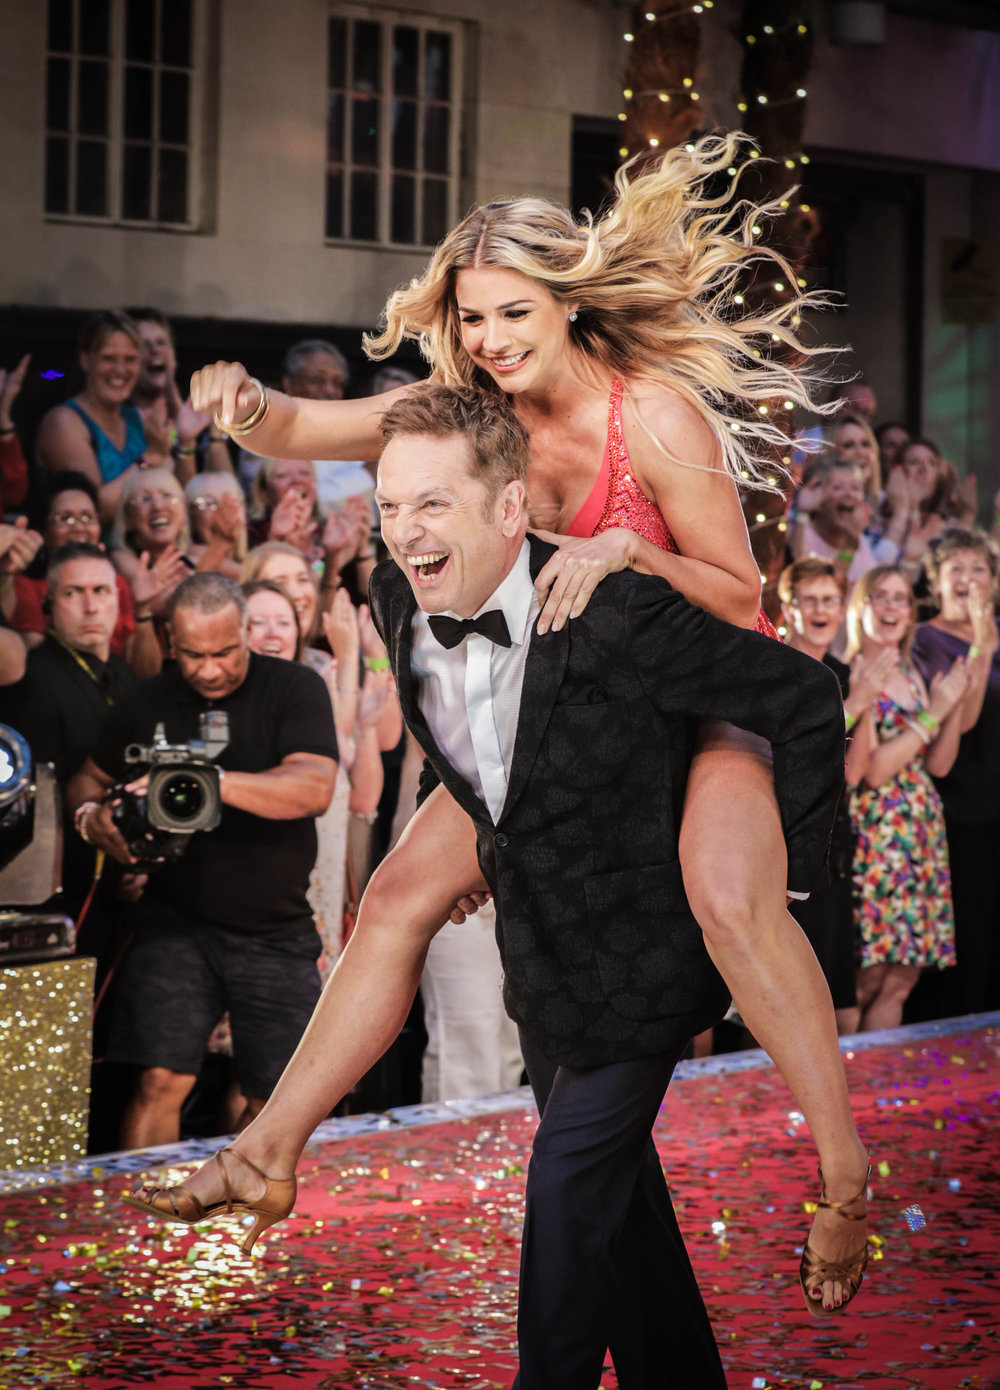 PHT_B5327_strictly_come_dancing_13933.JPG